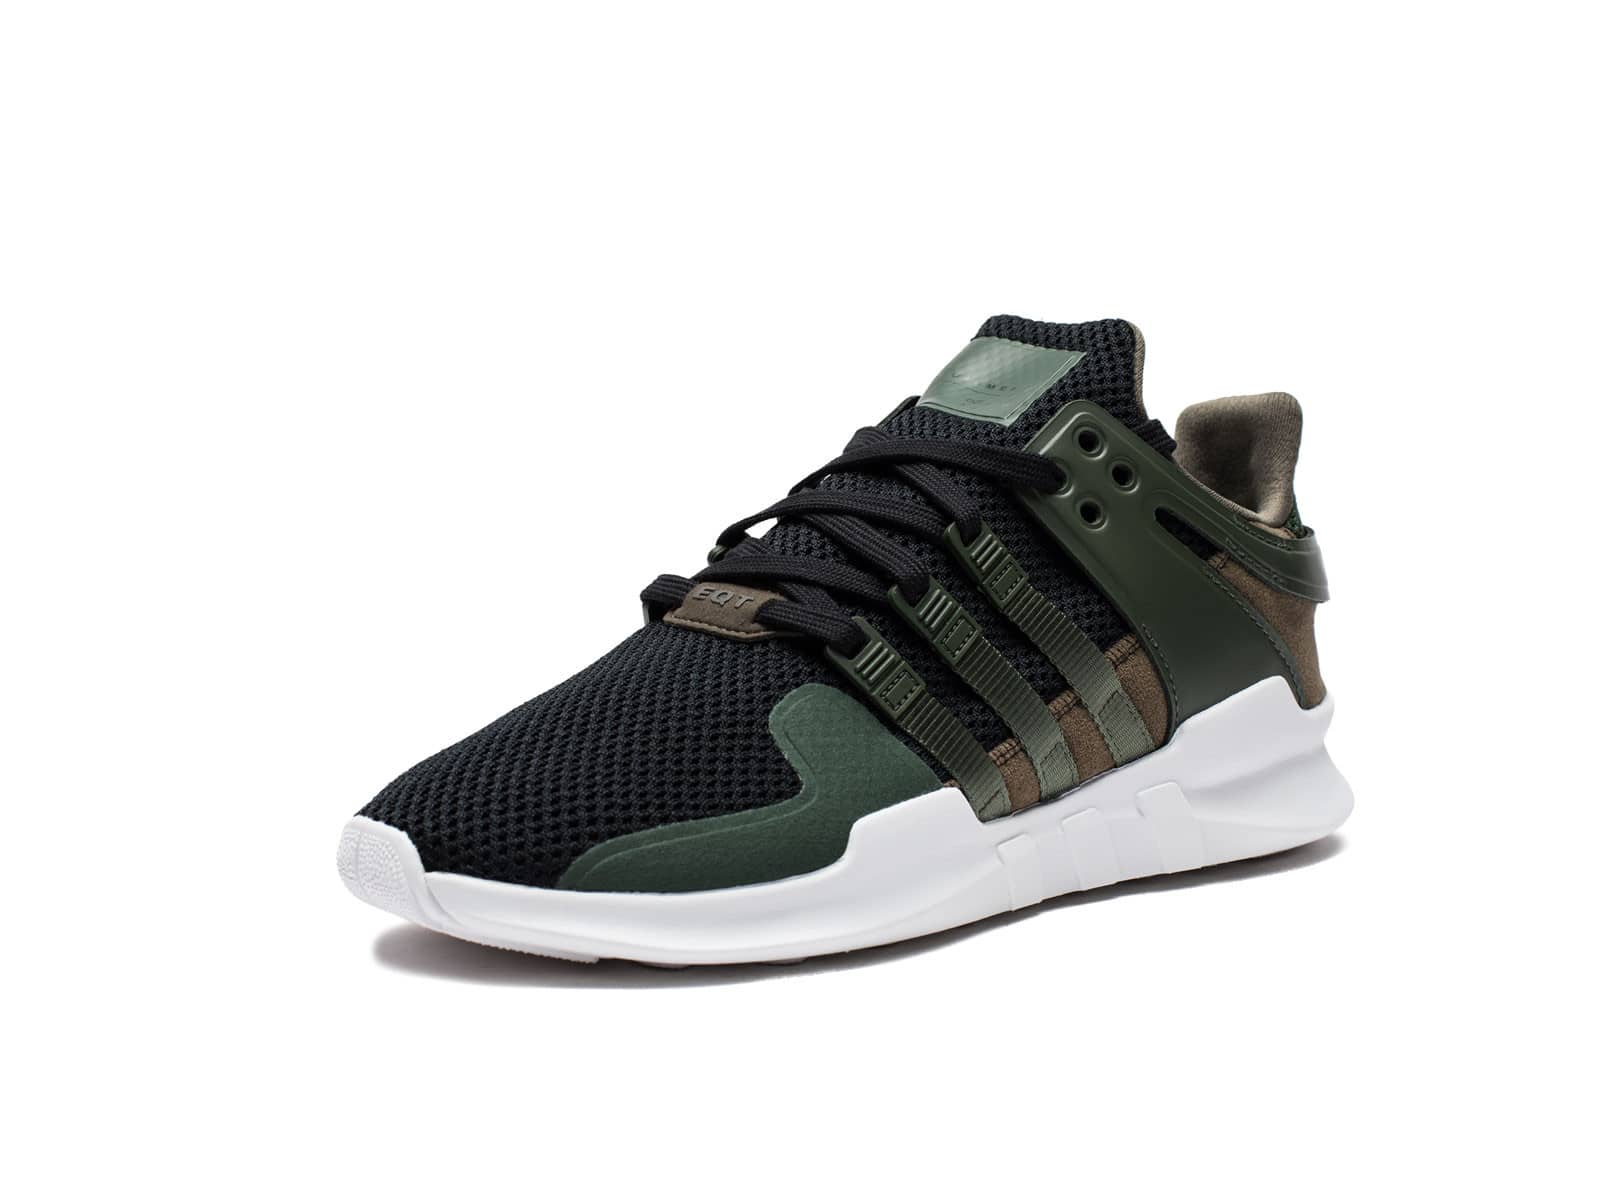 new products e341c 8c6a2 EQT SUPPORT ADV - BRANCH/BLACK/SHAGRN | Undefeated